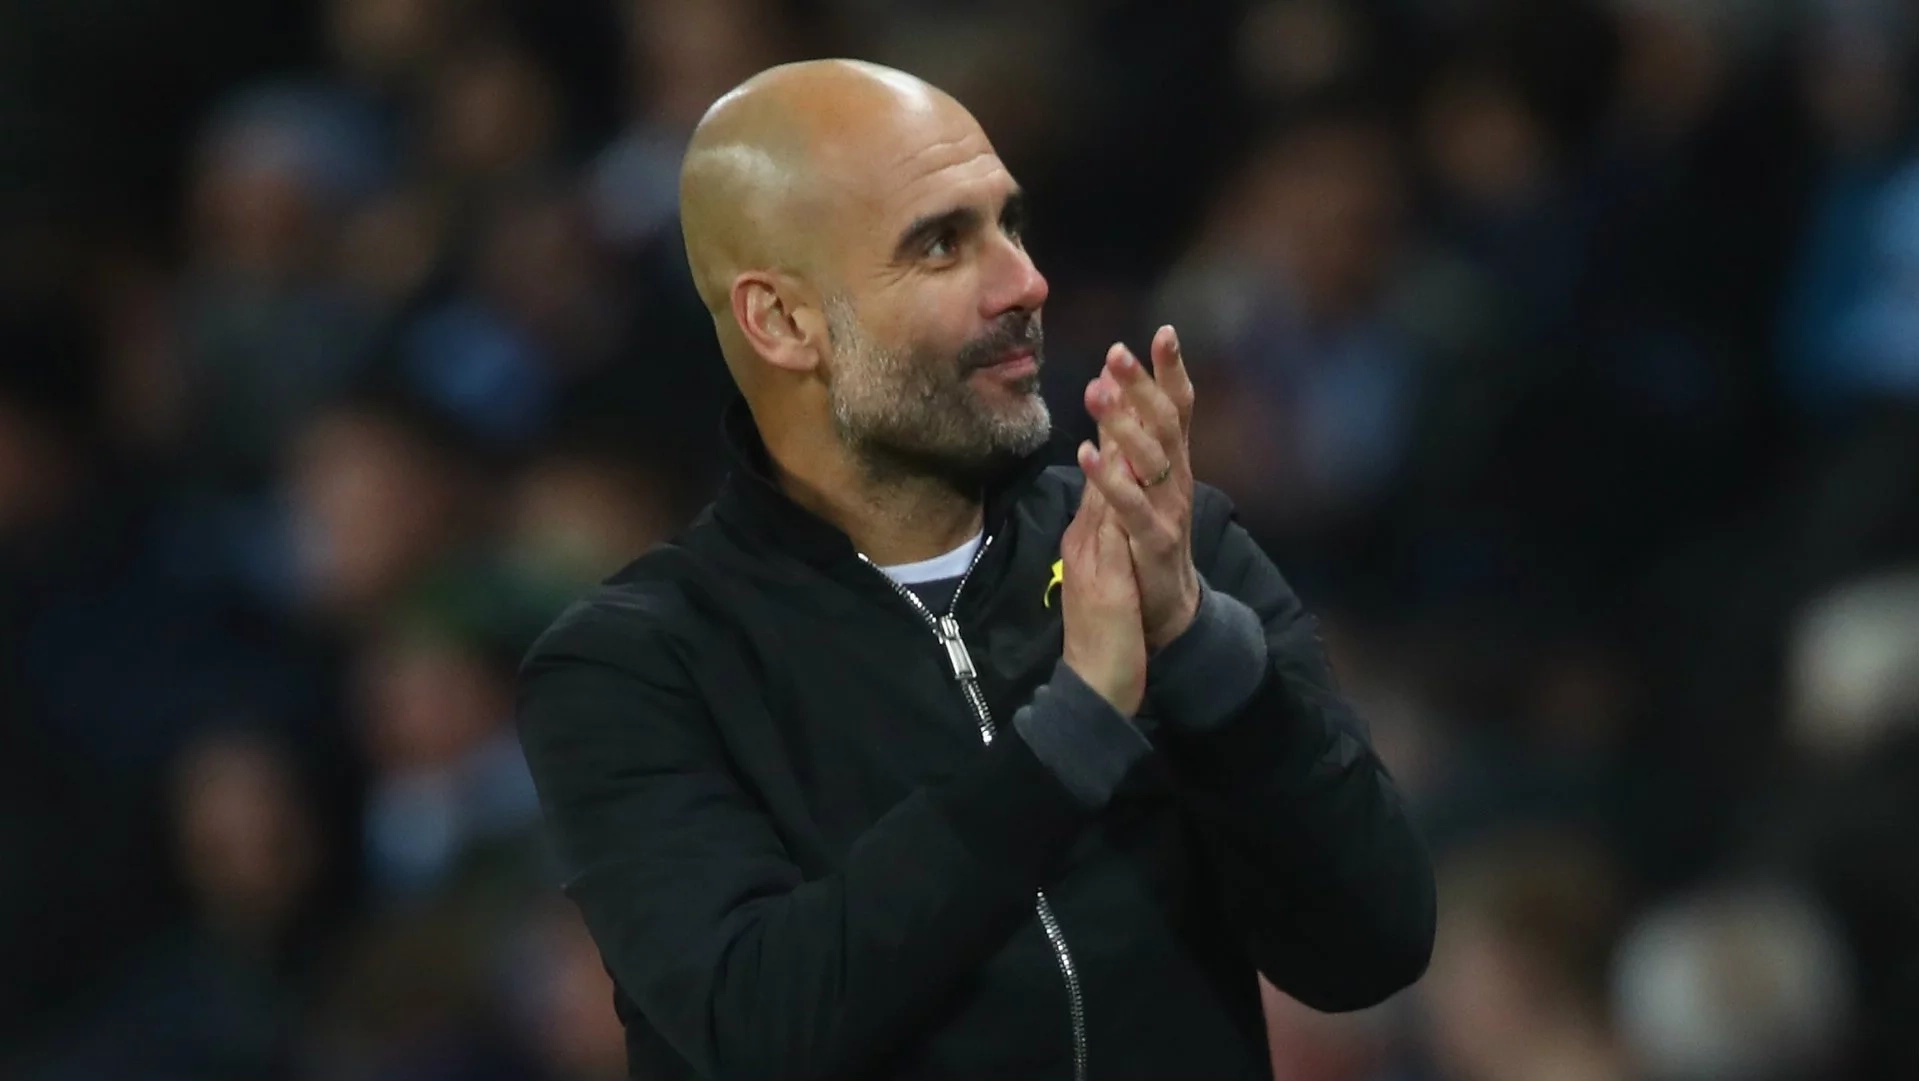 Man City top financial firepower list ahead of rivals Manchester United, Arsenal